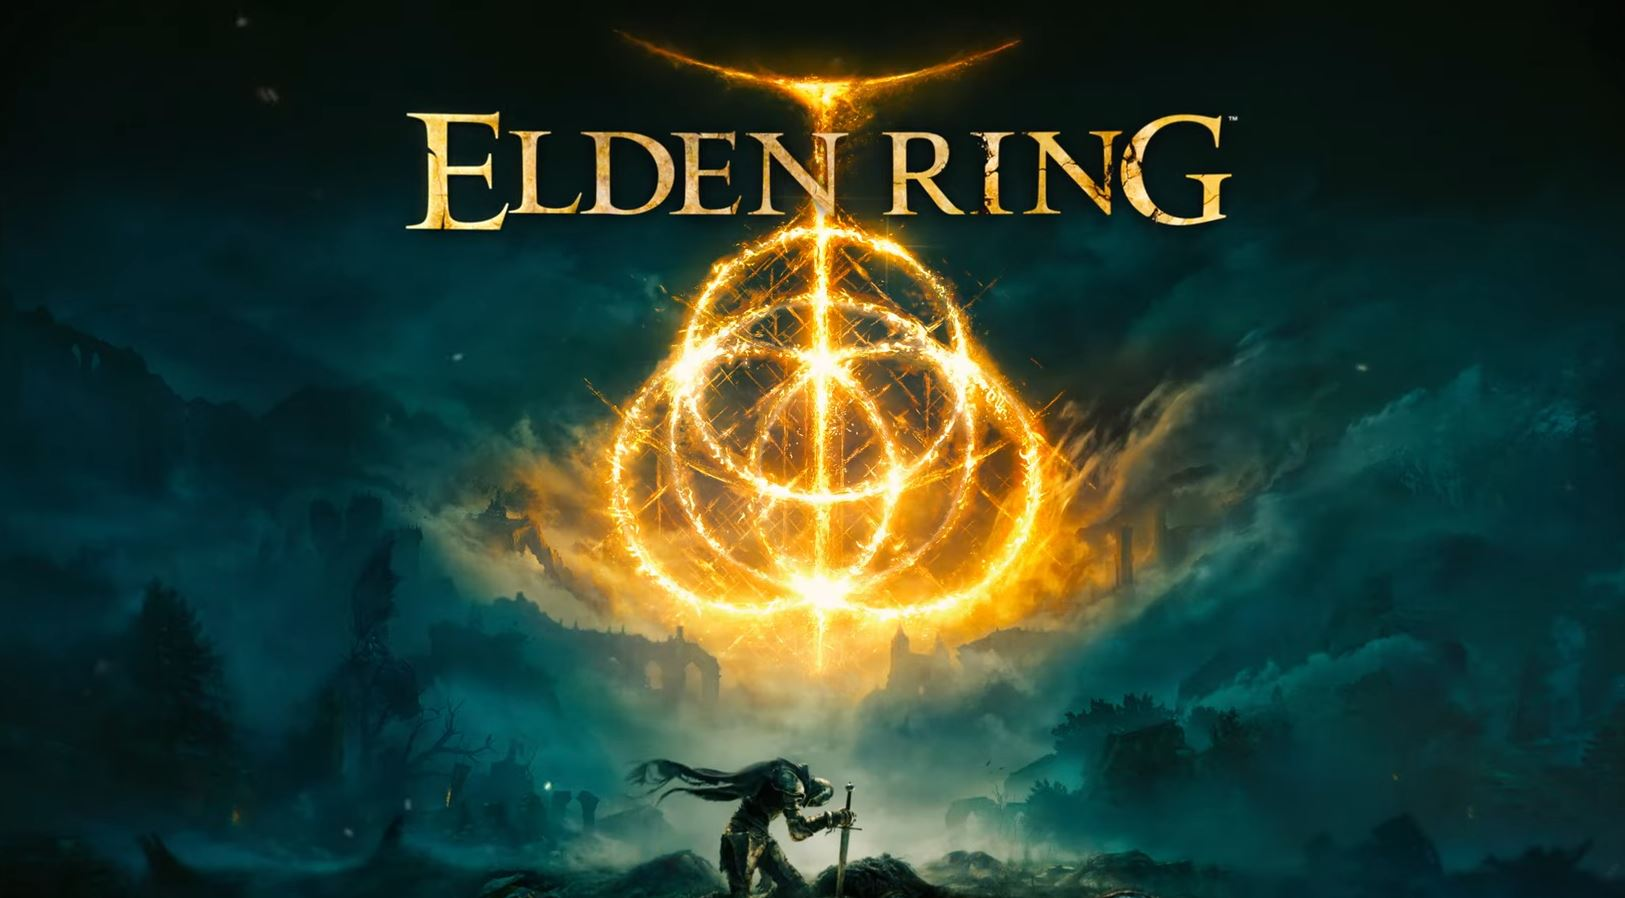 elden-ring-returns-with-a-gameplay-trailer-at-summer-games-fest-coming-to-ps5-and-ps4-in-january